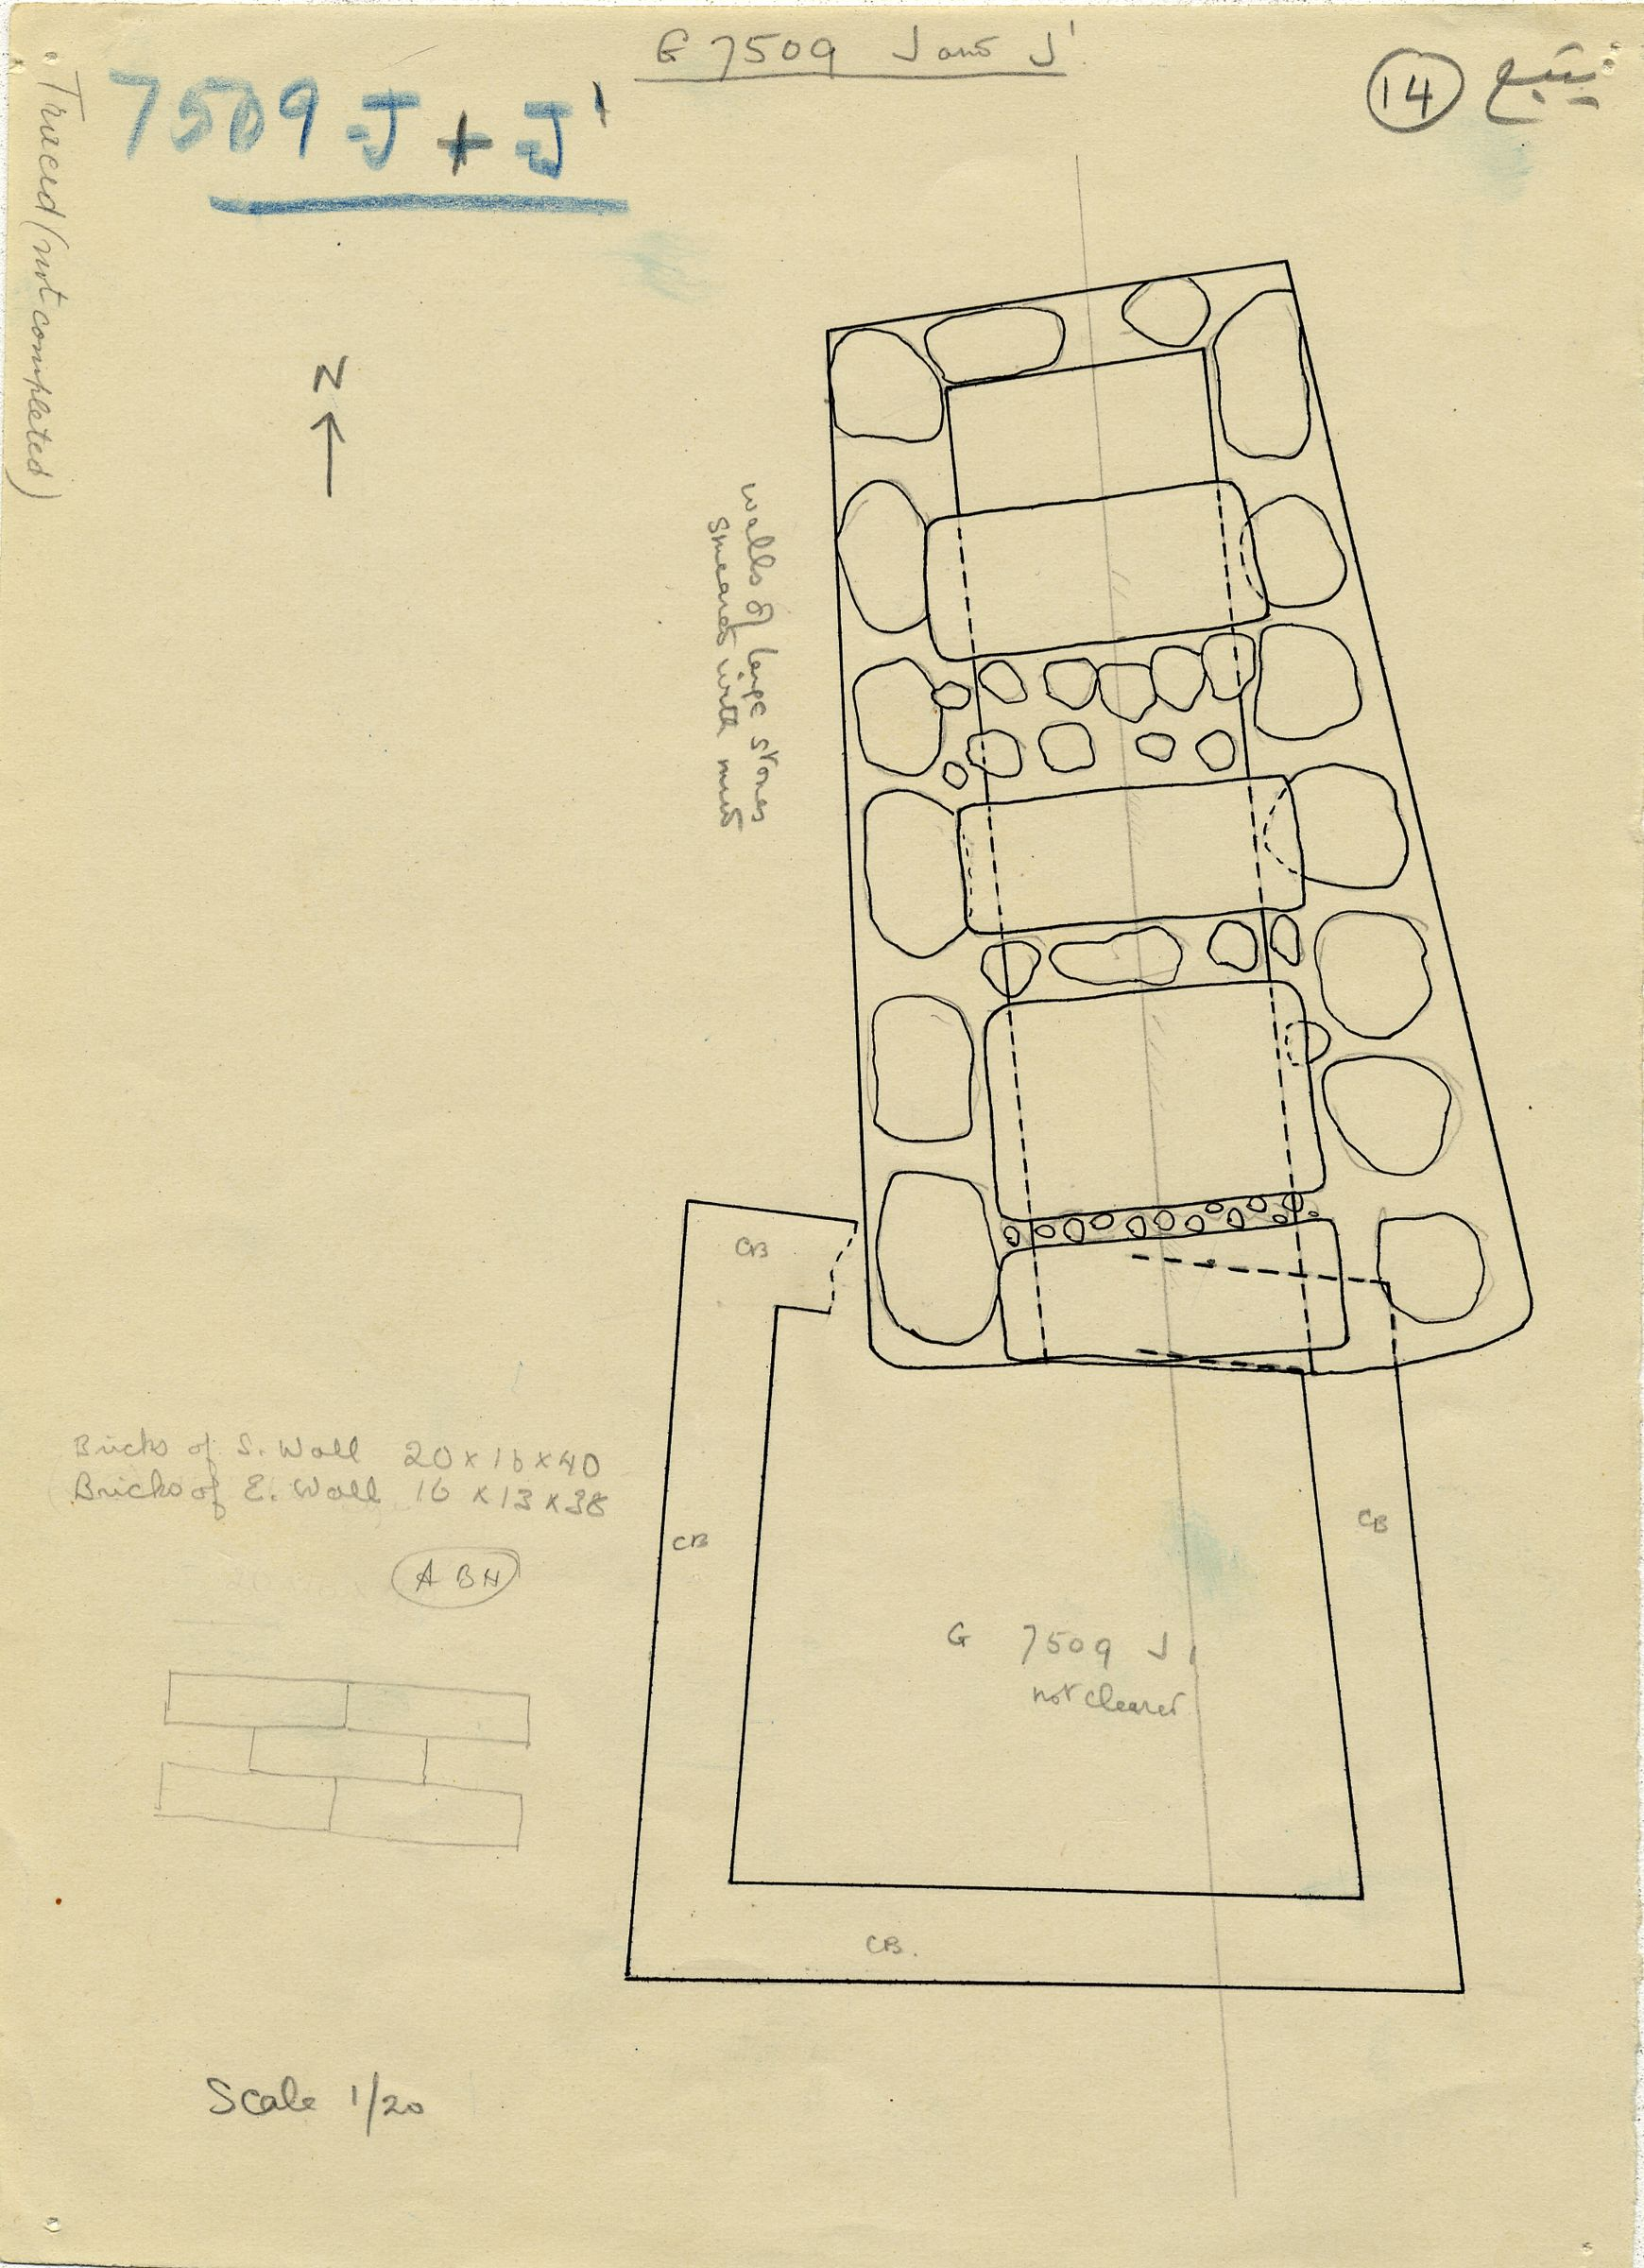 Maps and plans: G 7509, Shaft J and J1